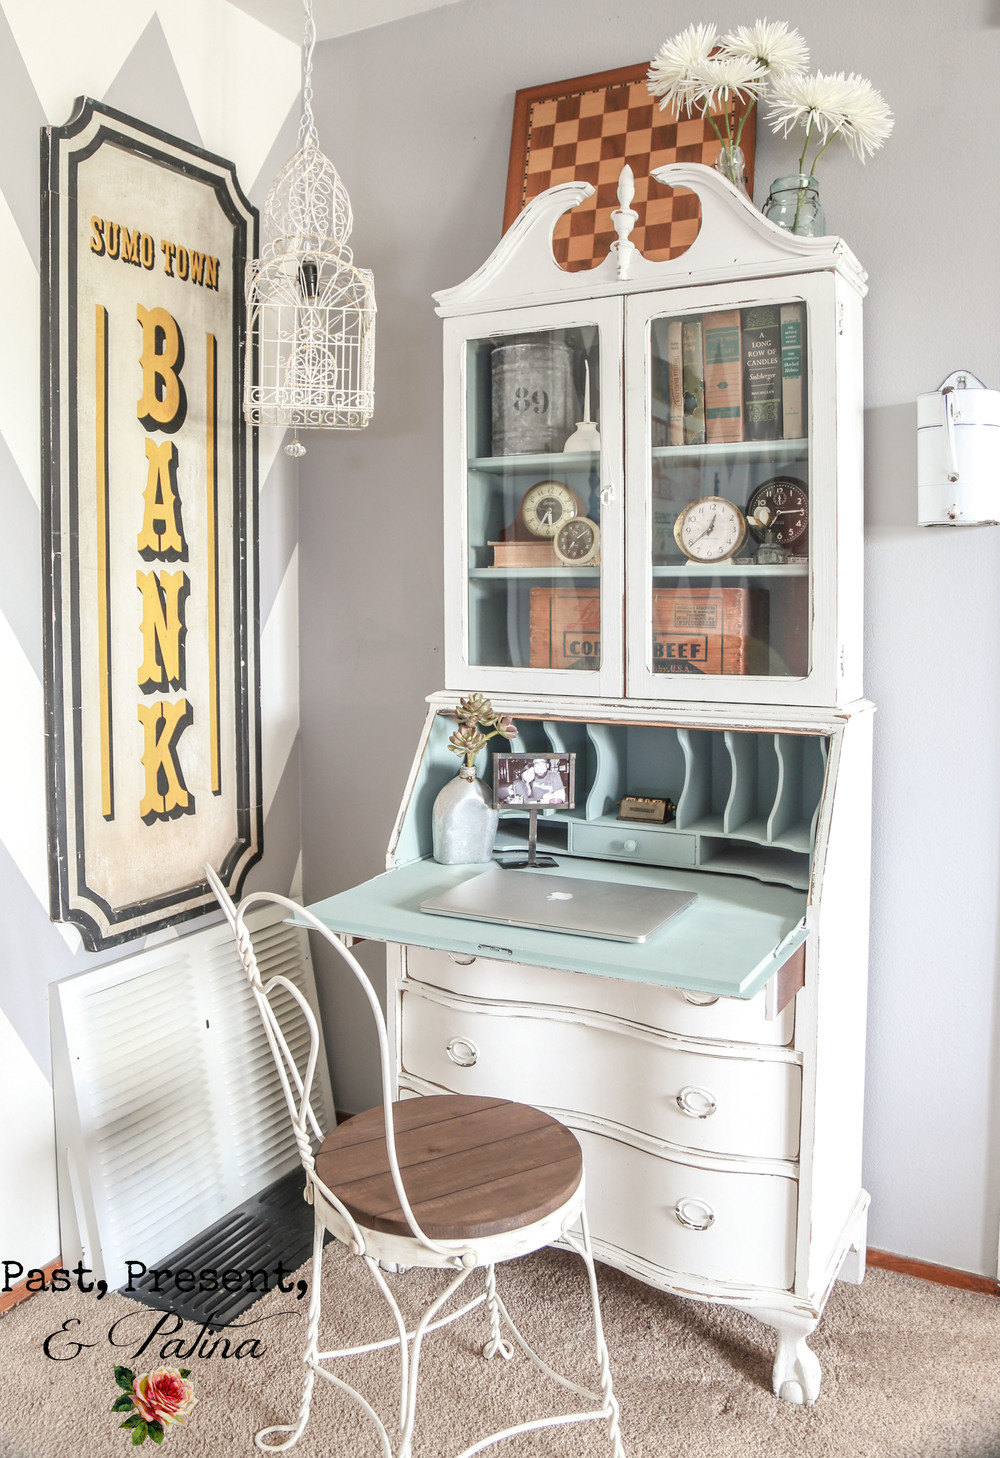 Vintage Secretary Desk Makeover by Past, Present, and Patina - Vintage Secretary Desk Makeover Ideas - Within The Grove